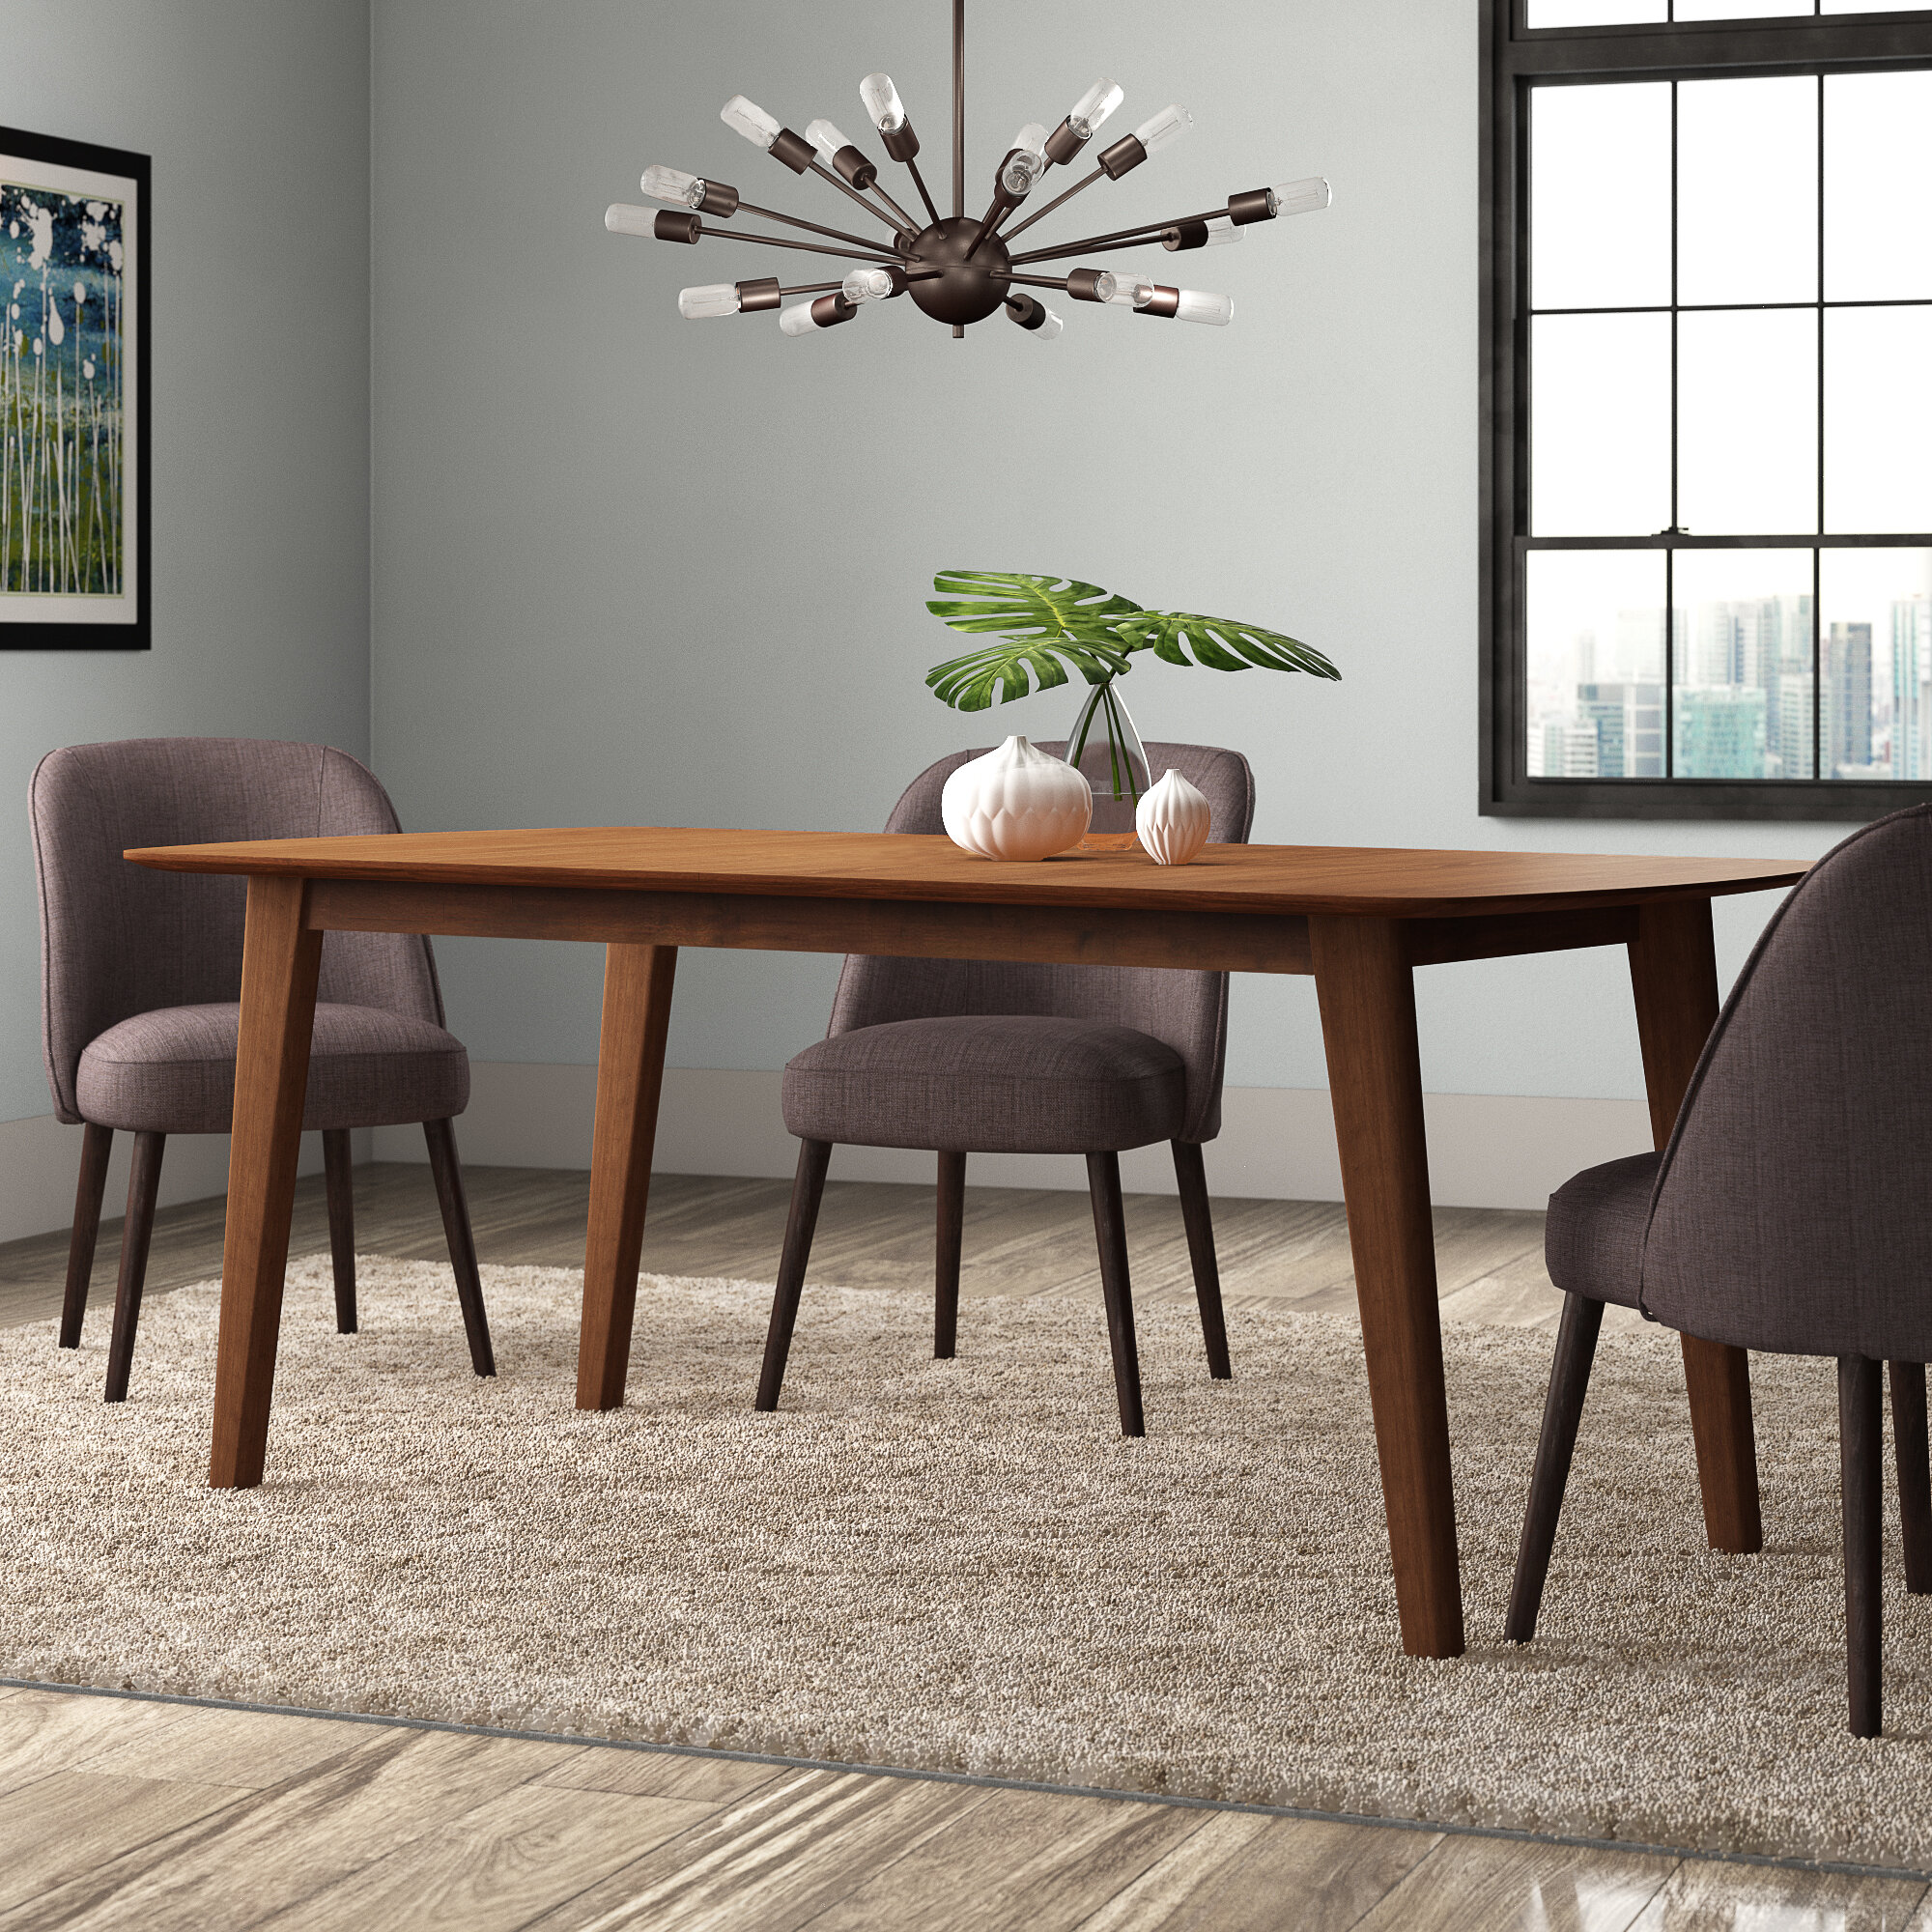 Extendable Mid Century Modern Kitchen Dining Tables You Ll Love In 2021 Wayfair